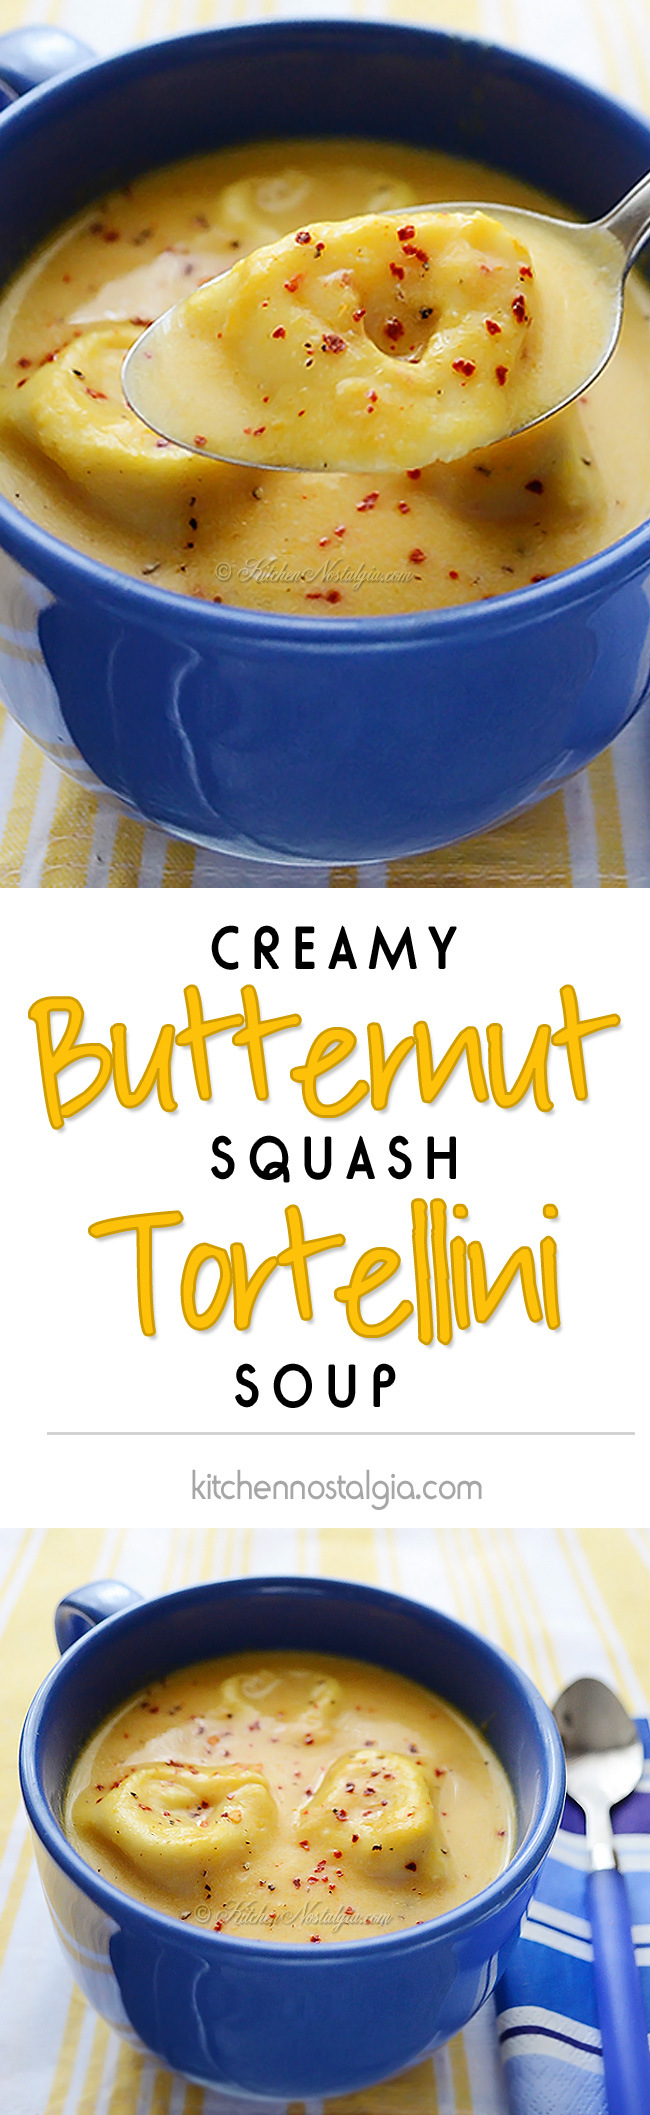 Creamy Butternut Squash Tortellini Soup - the ultimate comfort food